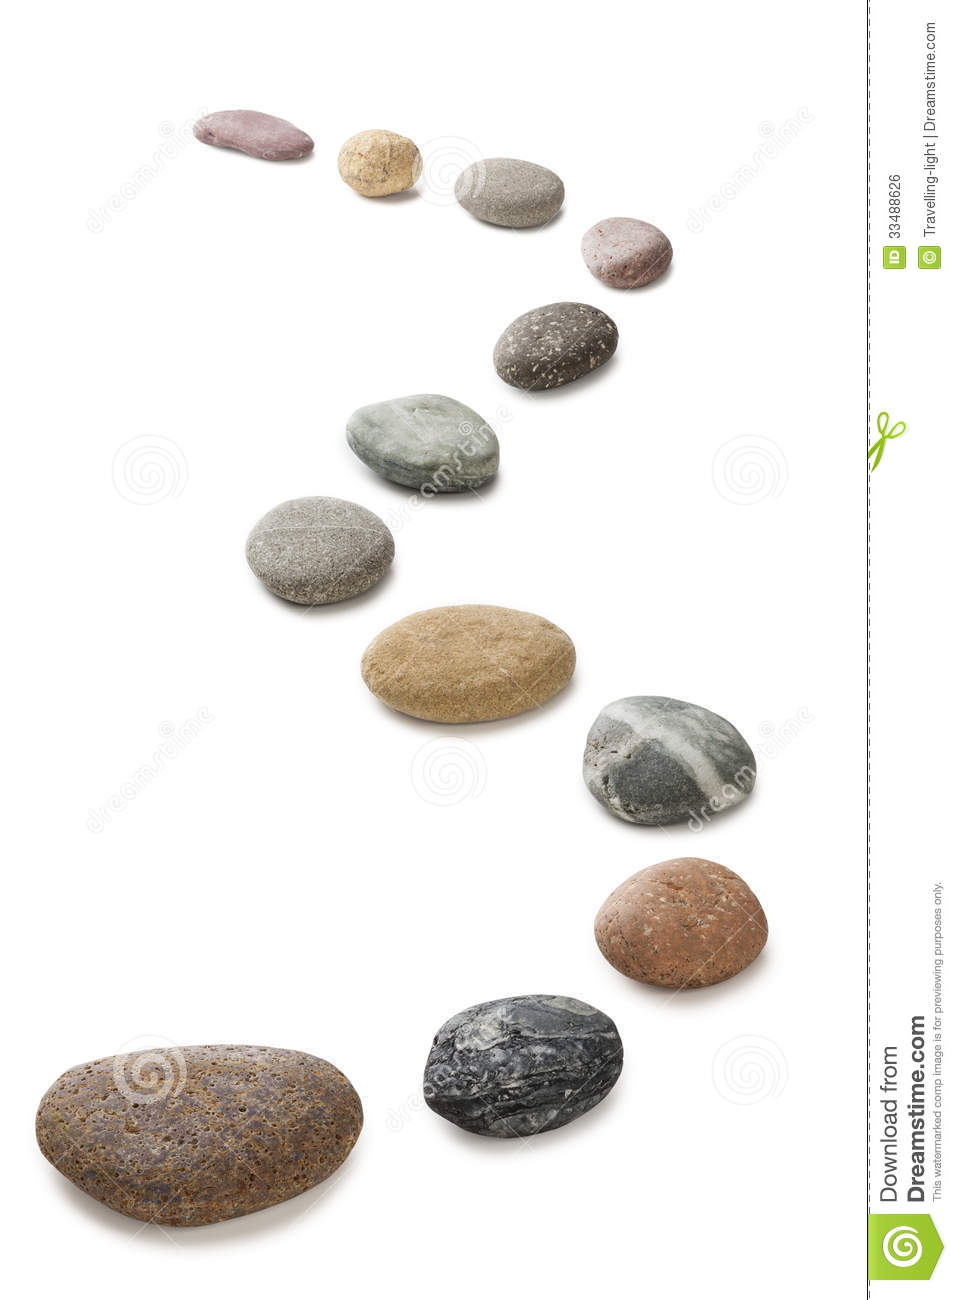 Pathway clipart stepping stone Clip Cartoon Path Download Stone